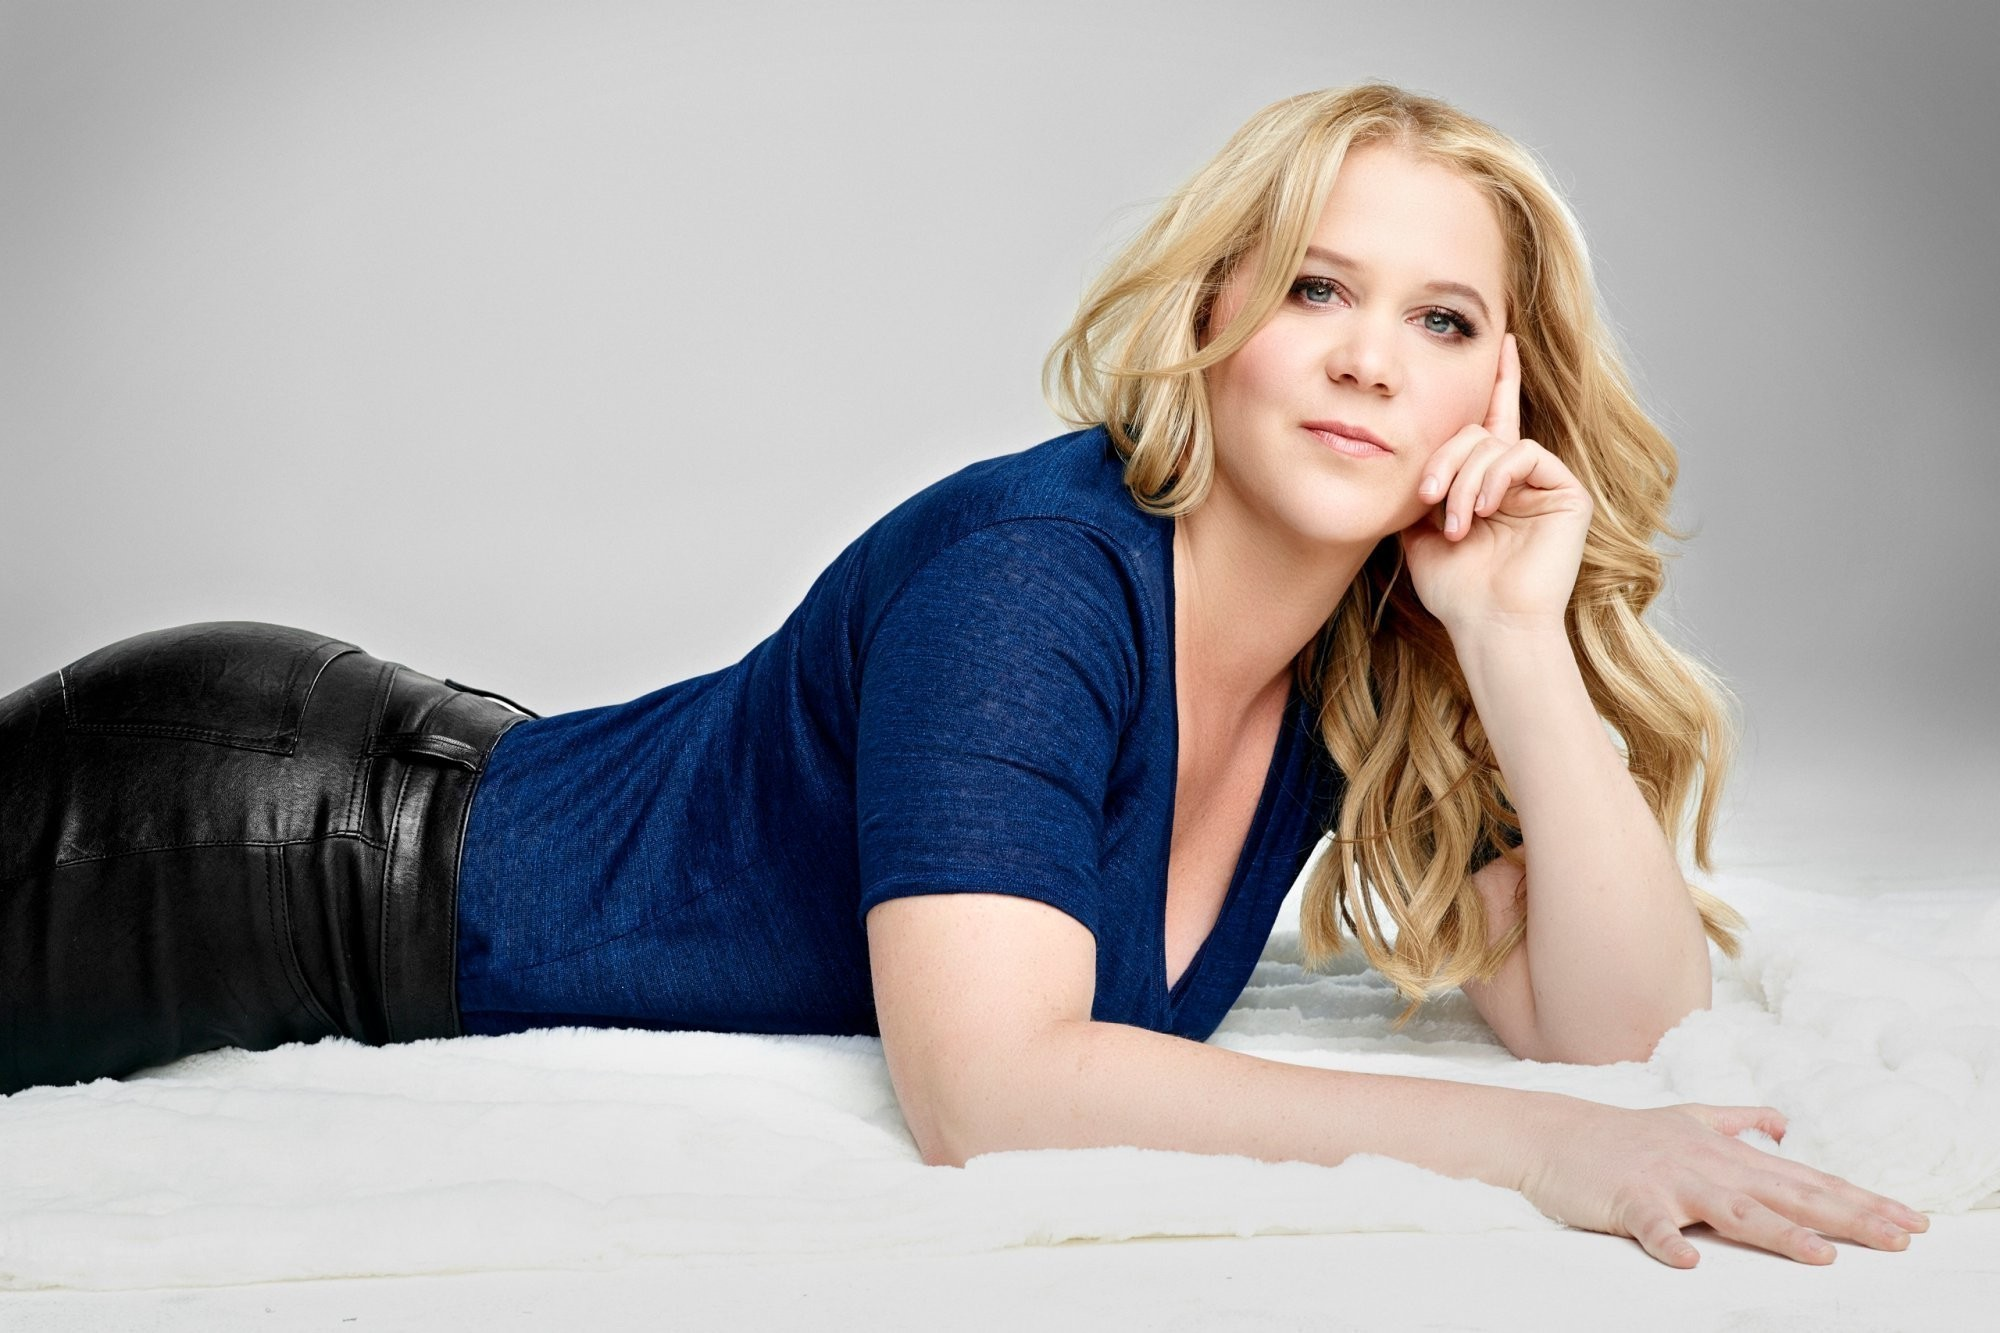 Amy Schumer Wallpapers Images Photos Pictures Backgrounds